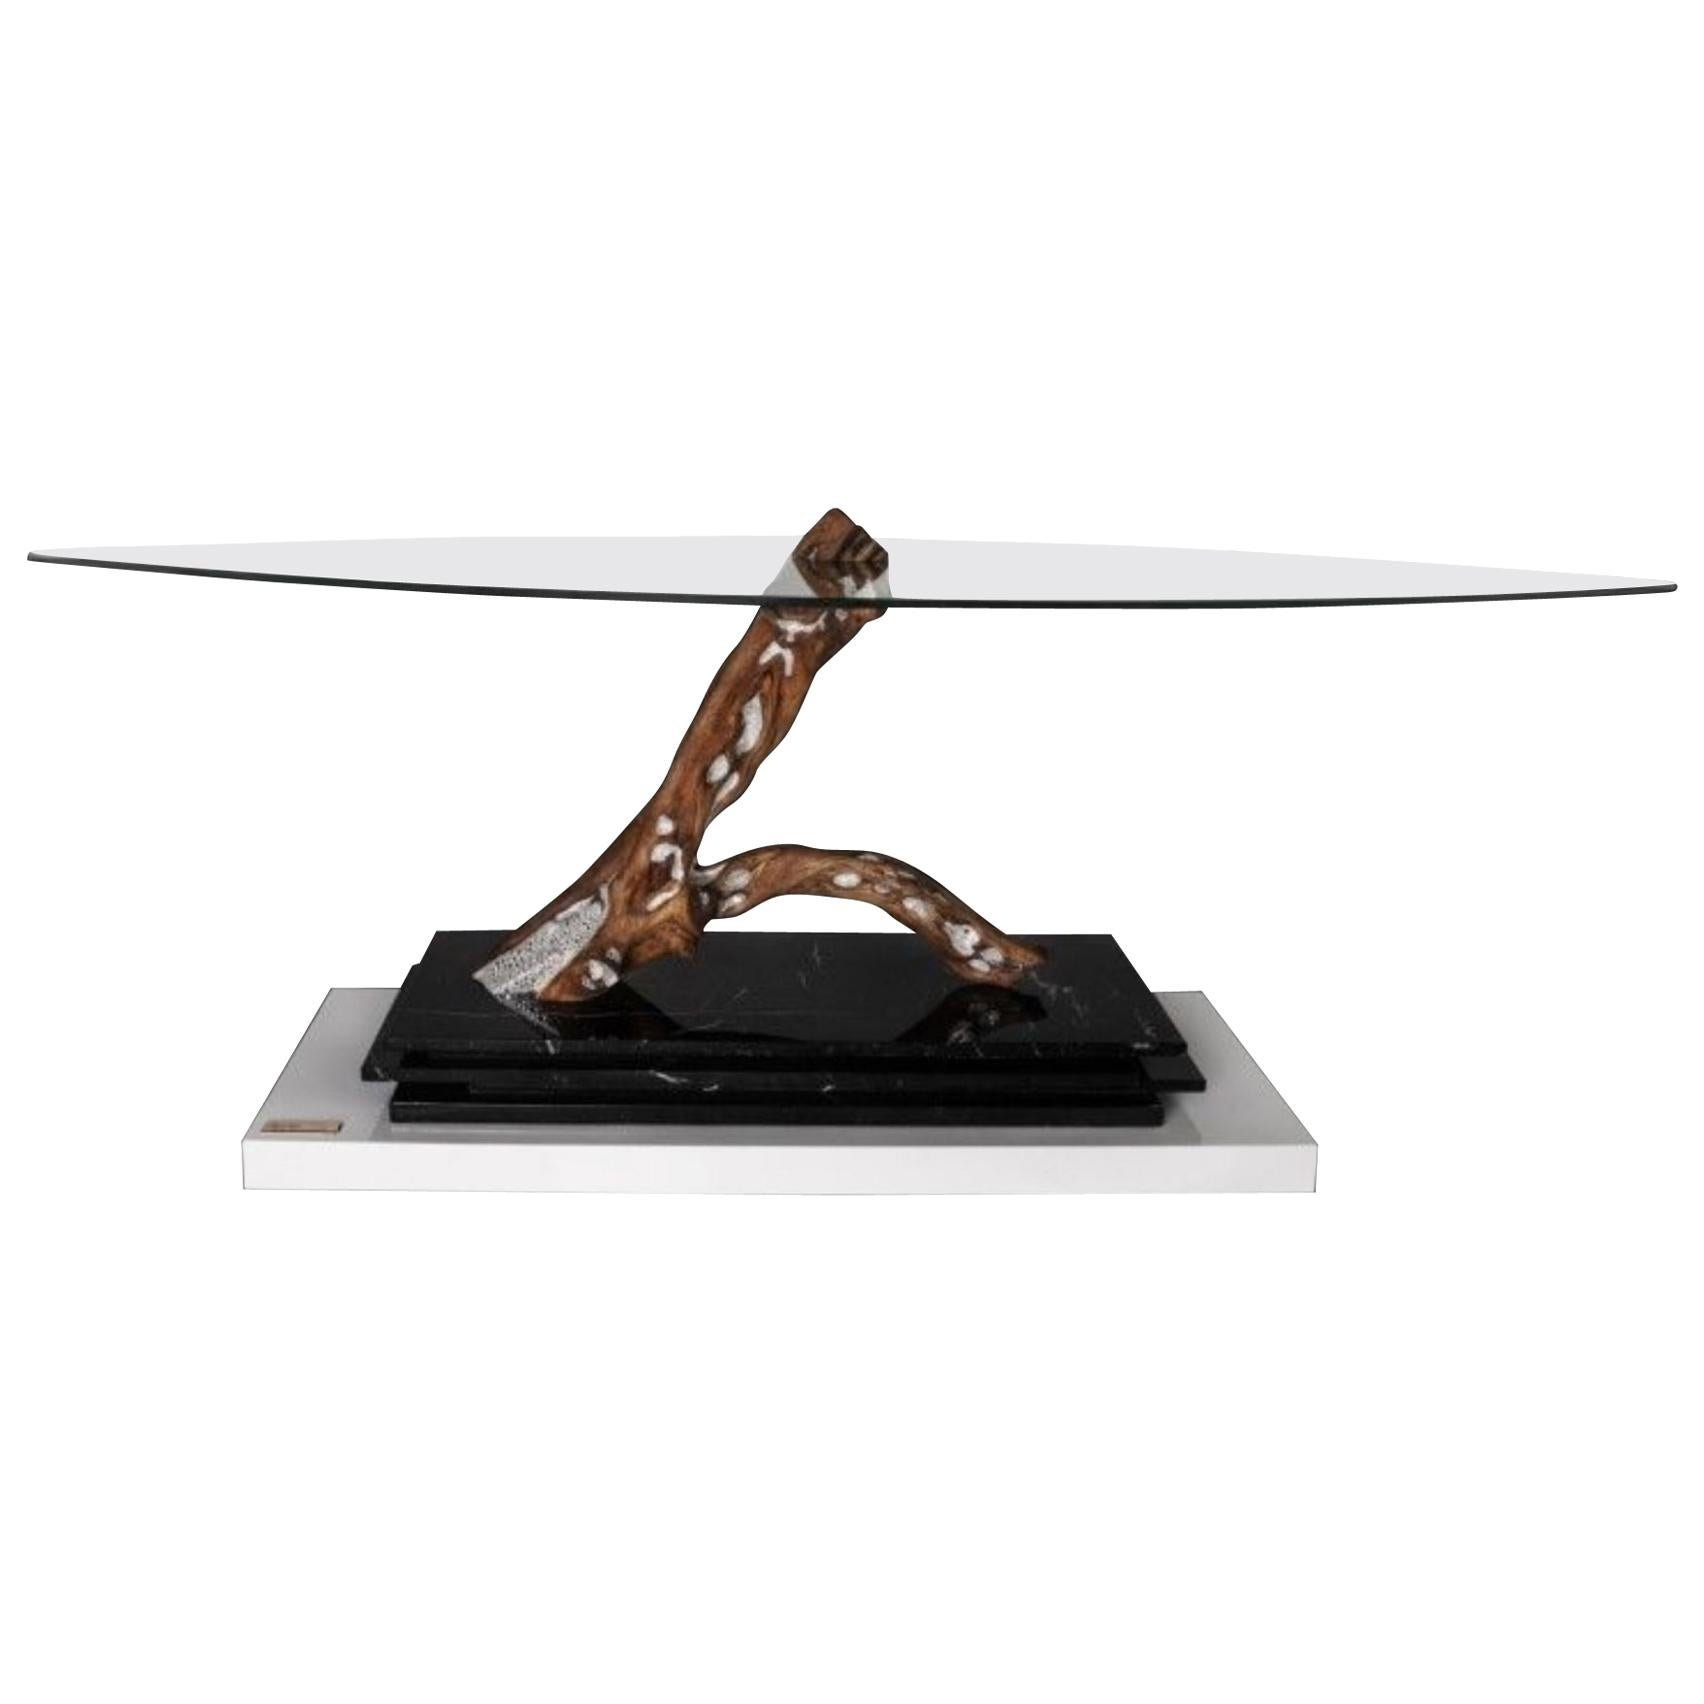 Thesaurus I Contemporary Design table with Swarovski Crystals, Marquina Marble